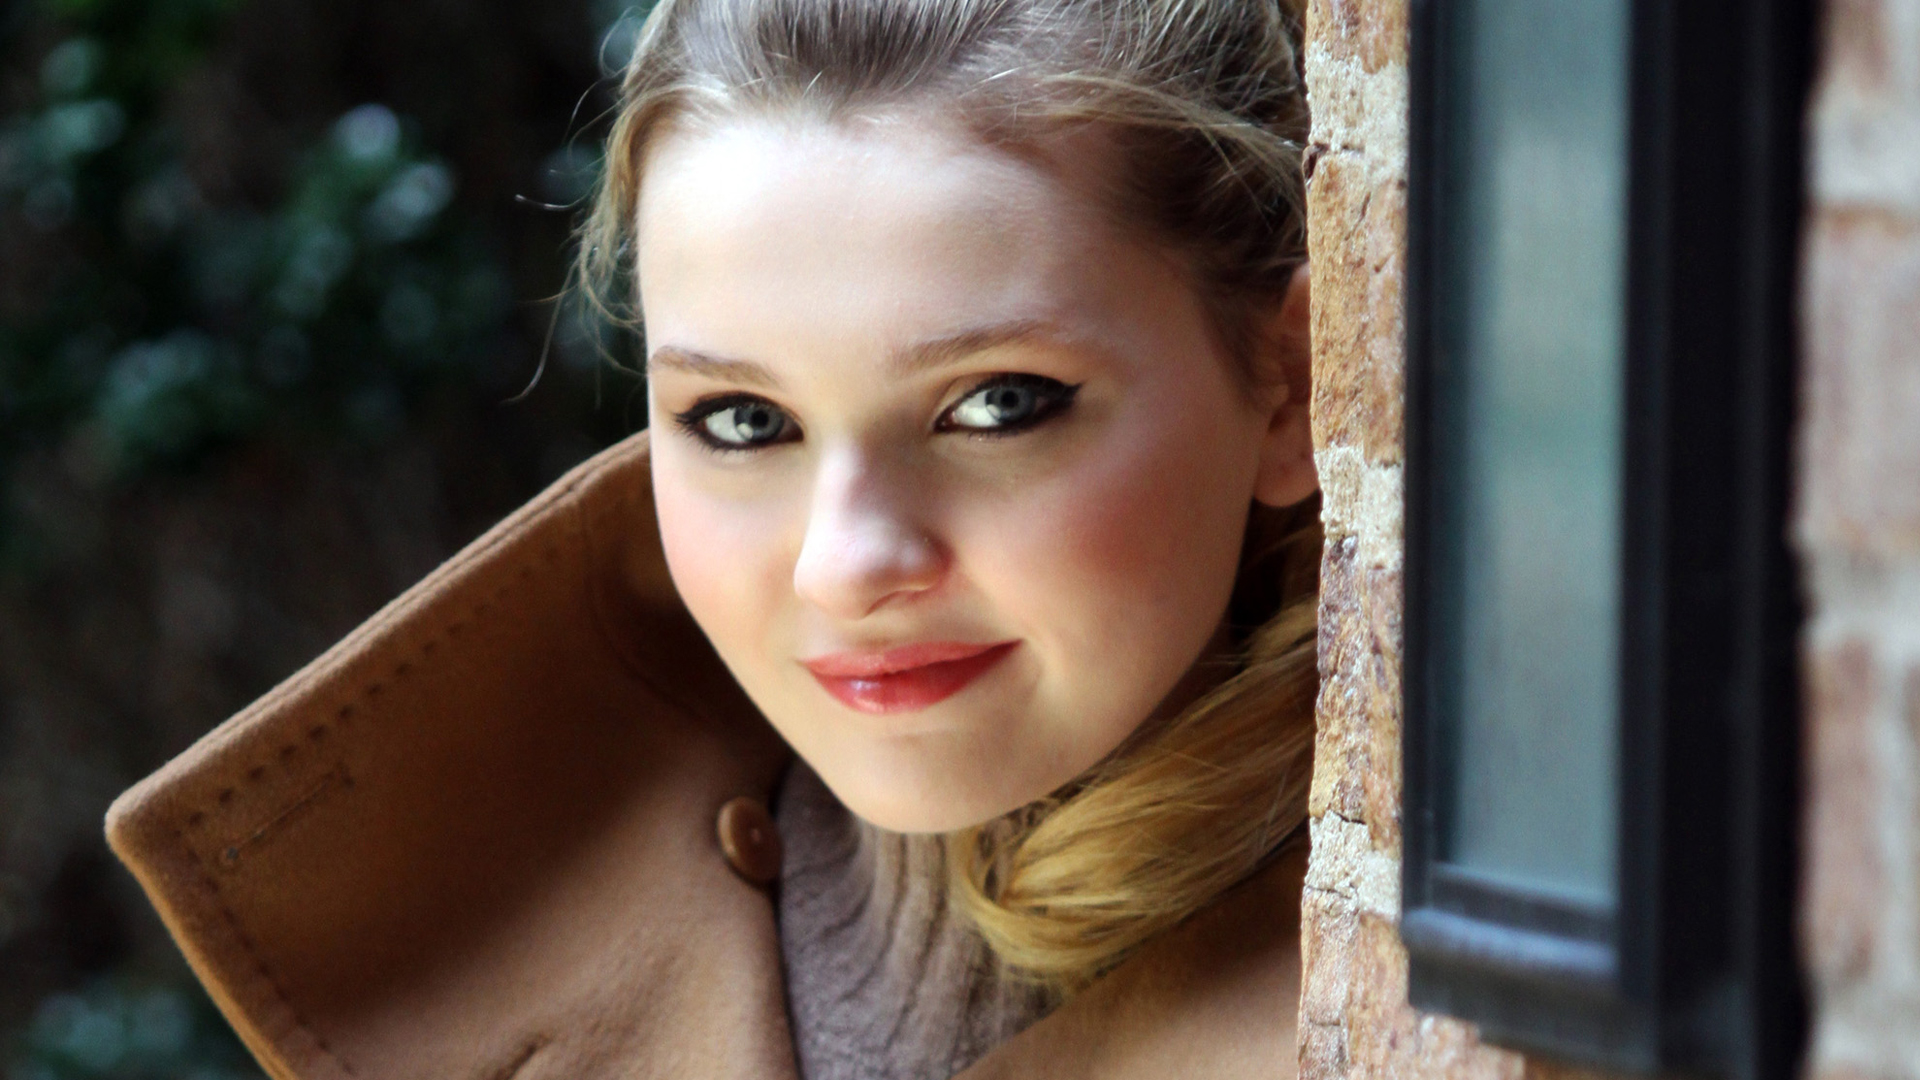 abigail breslin pictures 31579